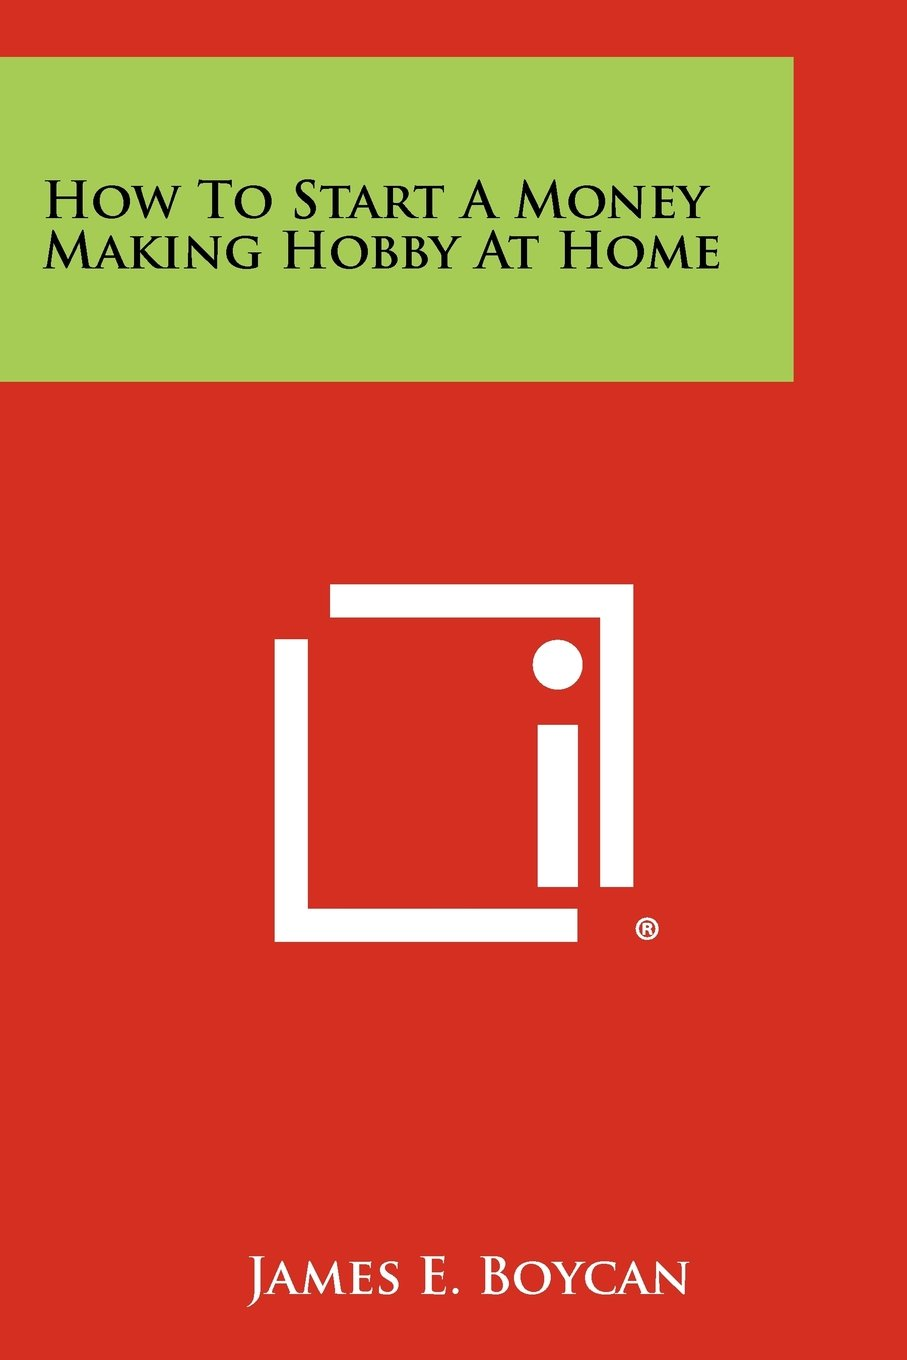 How To Start A Money Making Hobby At Home PDF